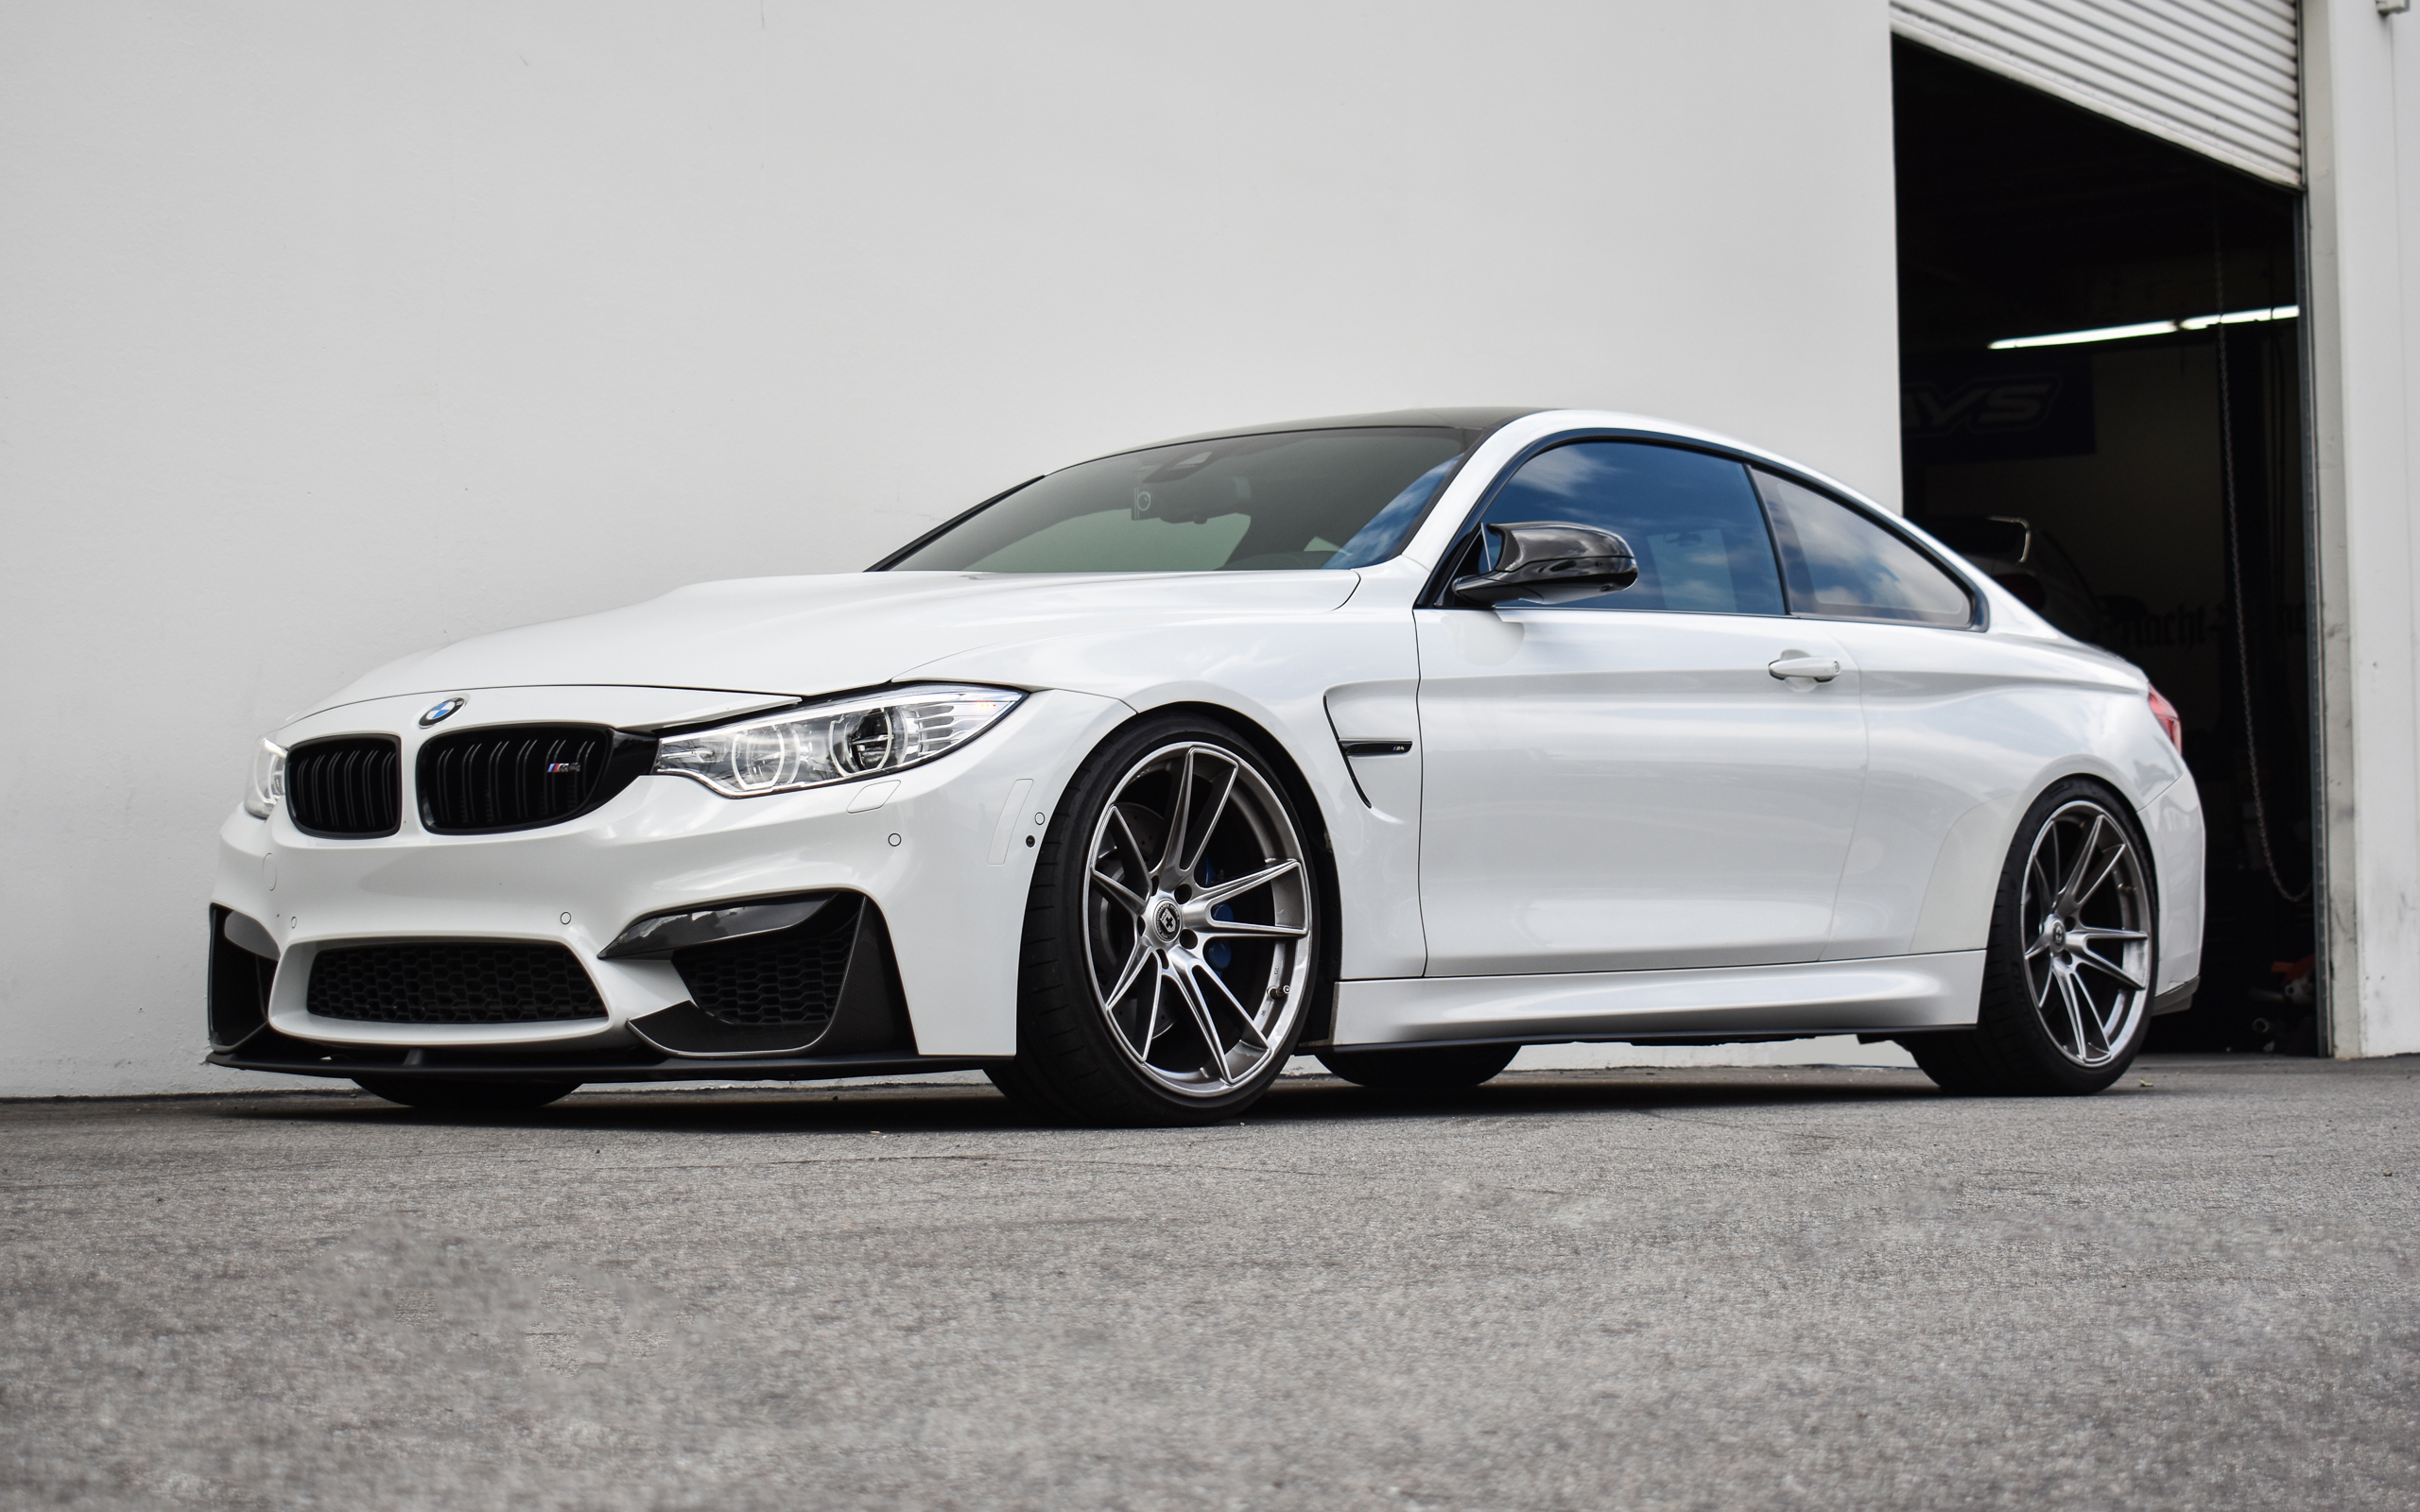 2017 Alpine White F82 M4 - KW V3 Coilovers & Flowform FF04